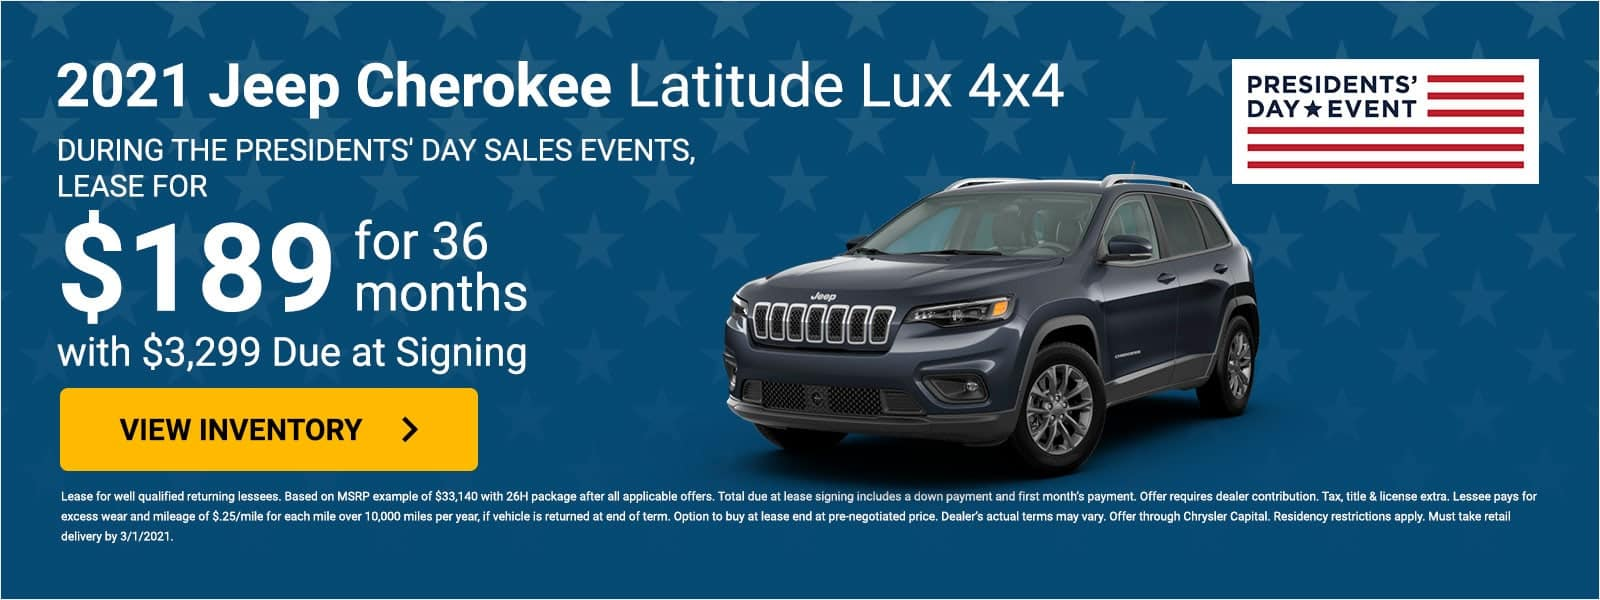 2021 Jeep Cherokee offer